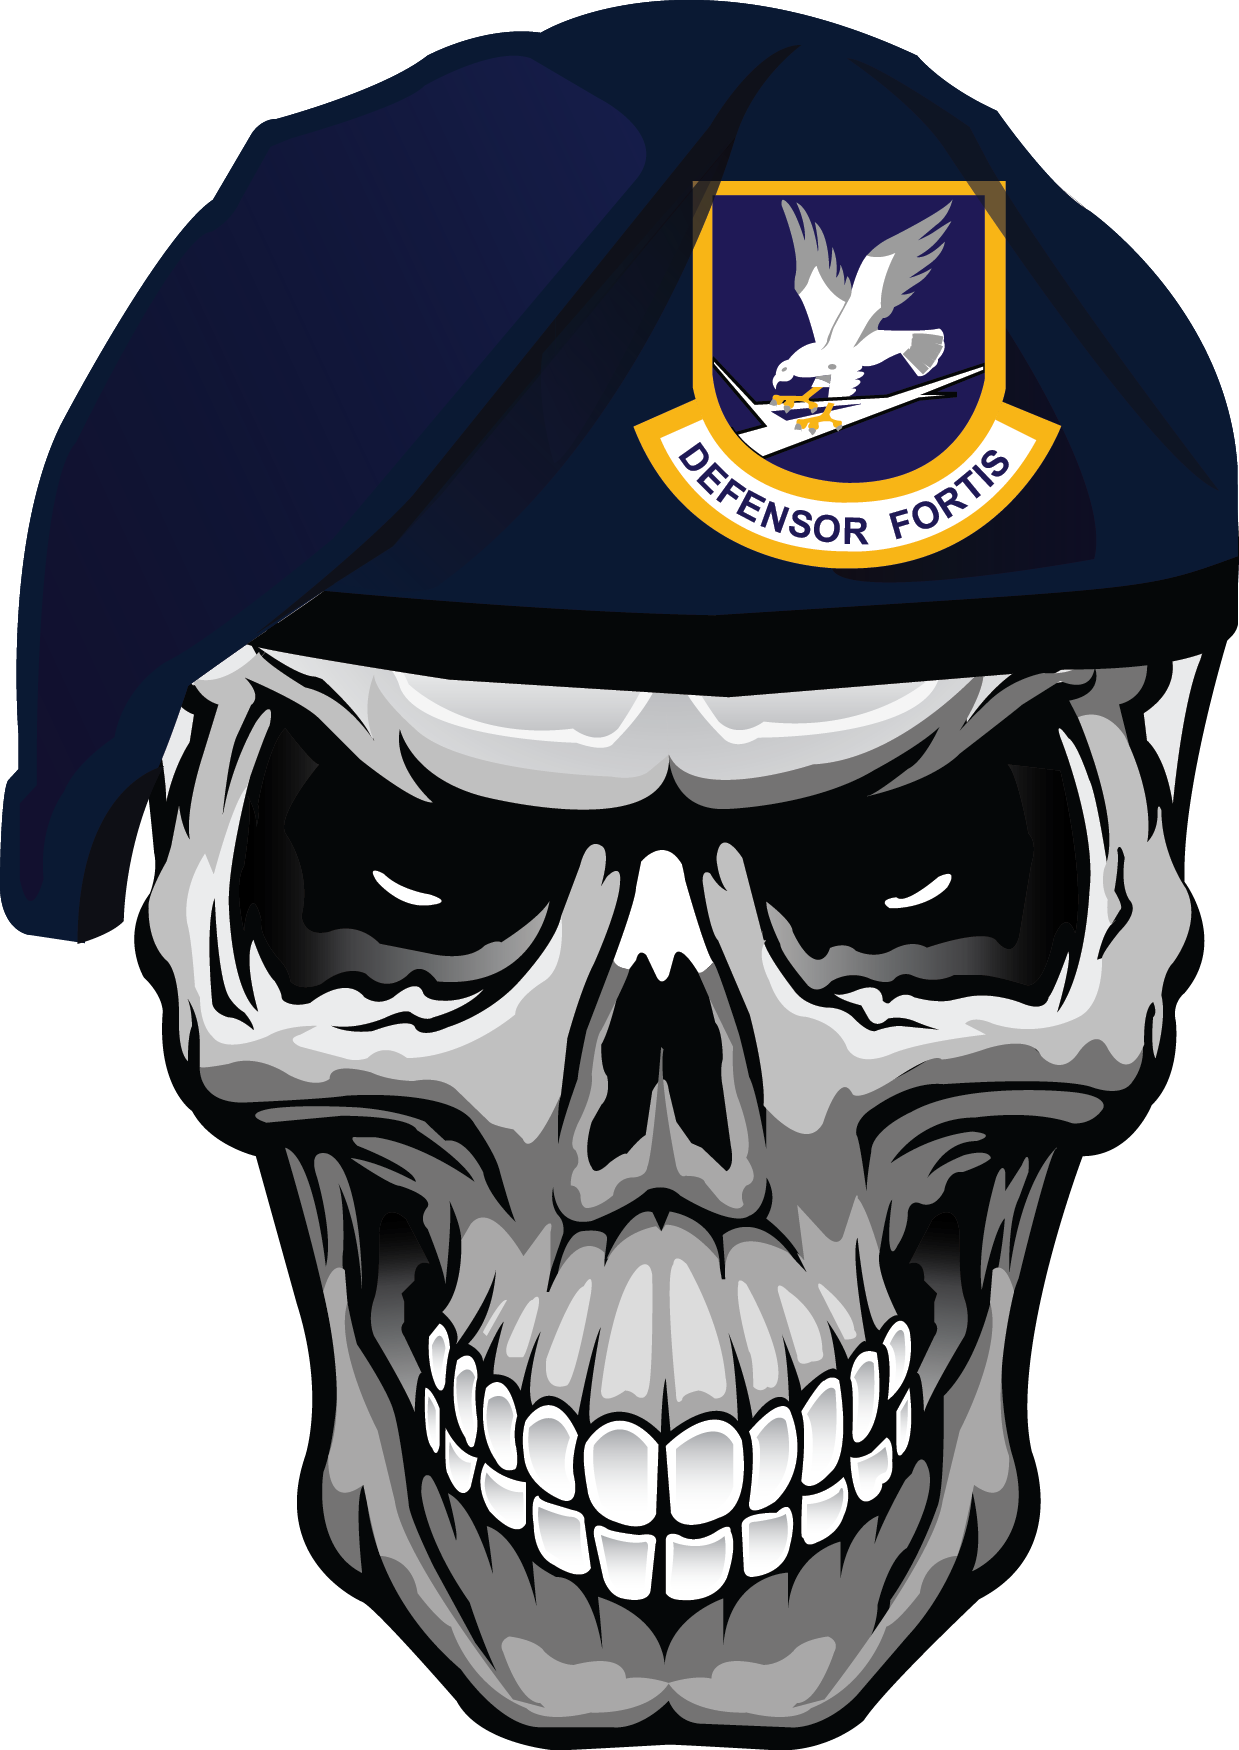 army skulls - Google Search | TATTOOS | Pinterest | Army ...